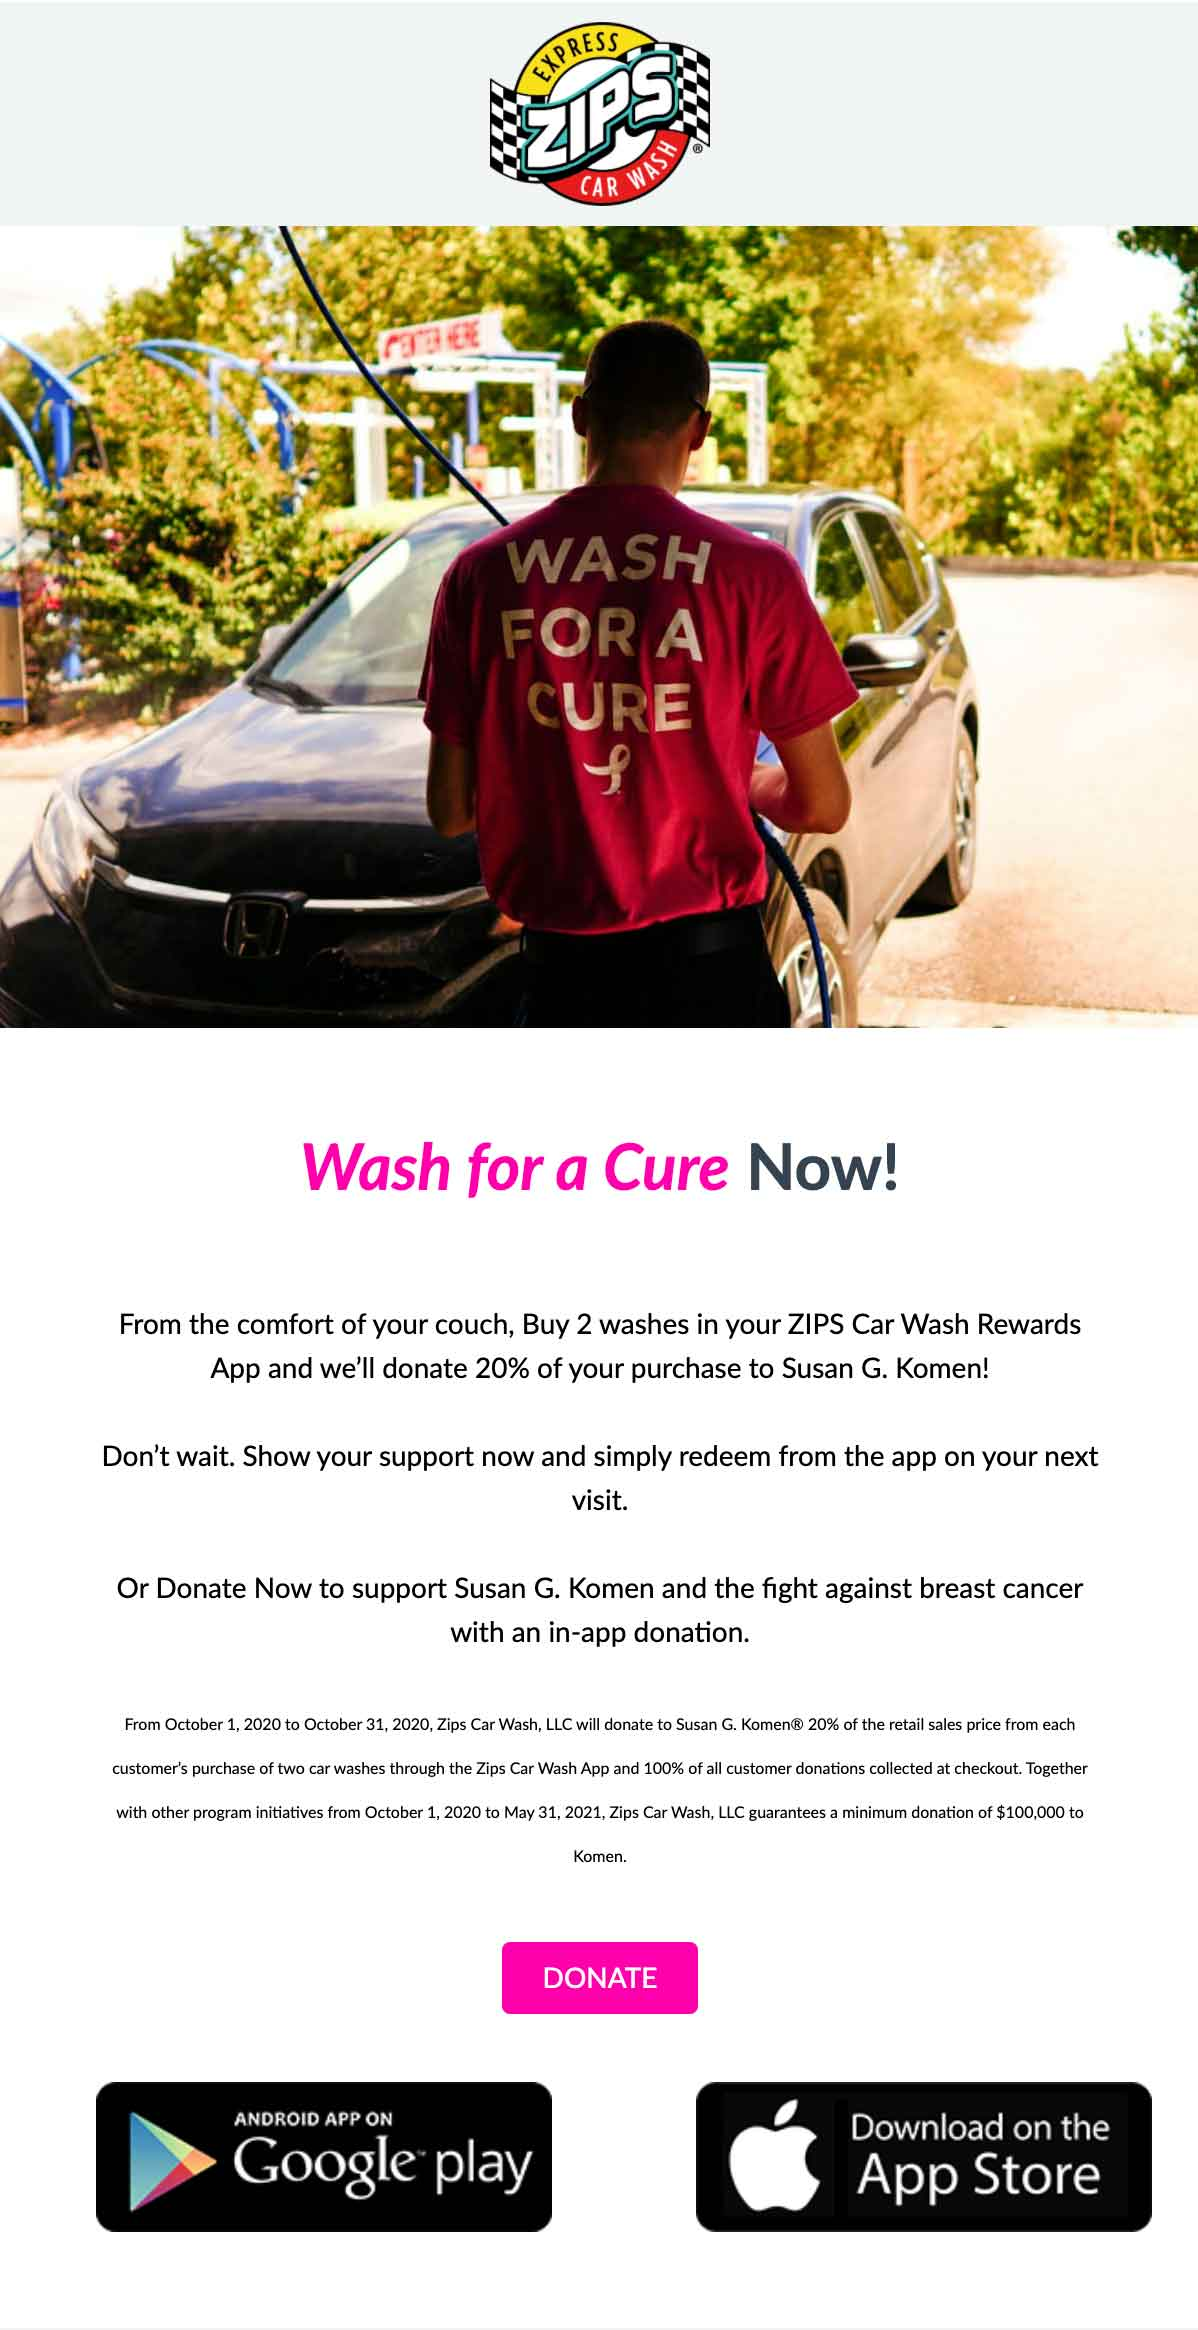 Zips Car Wash, wash for a cure email